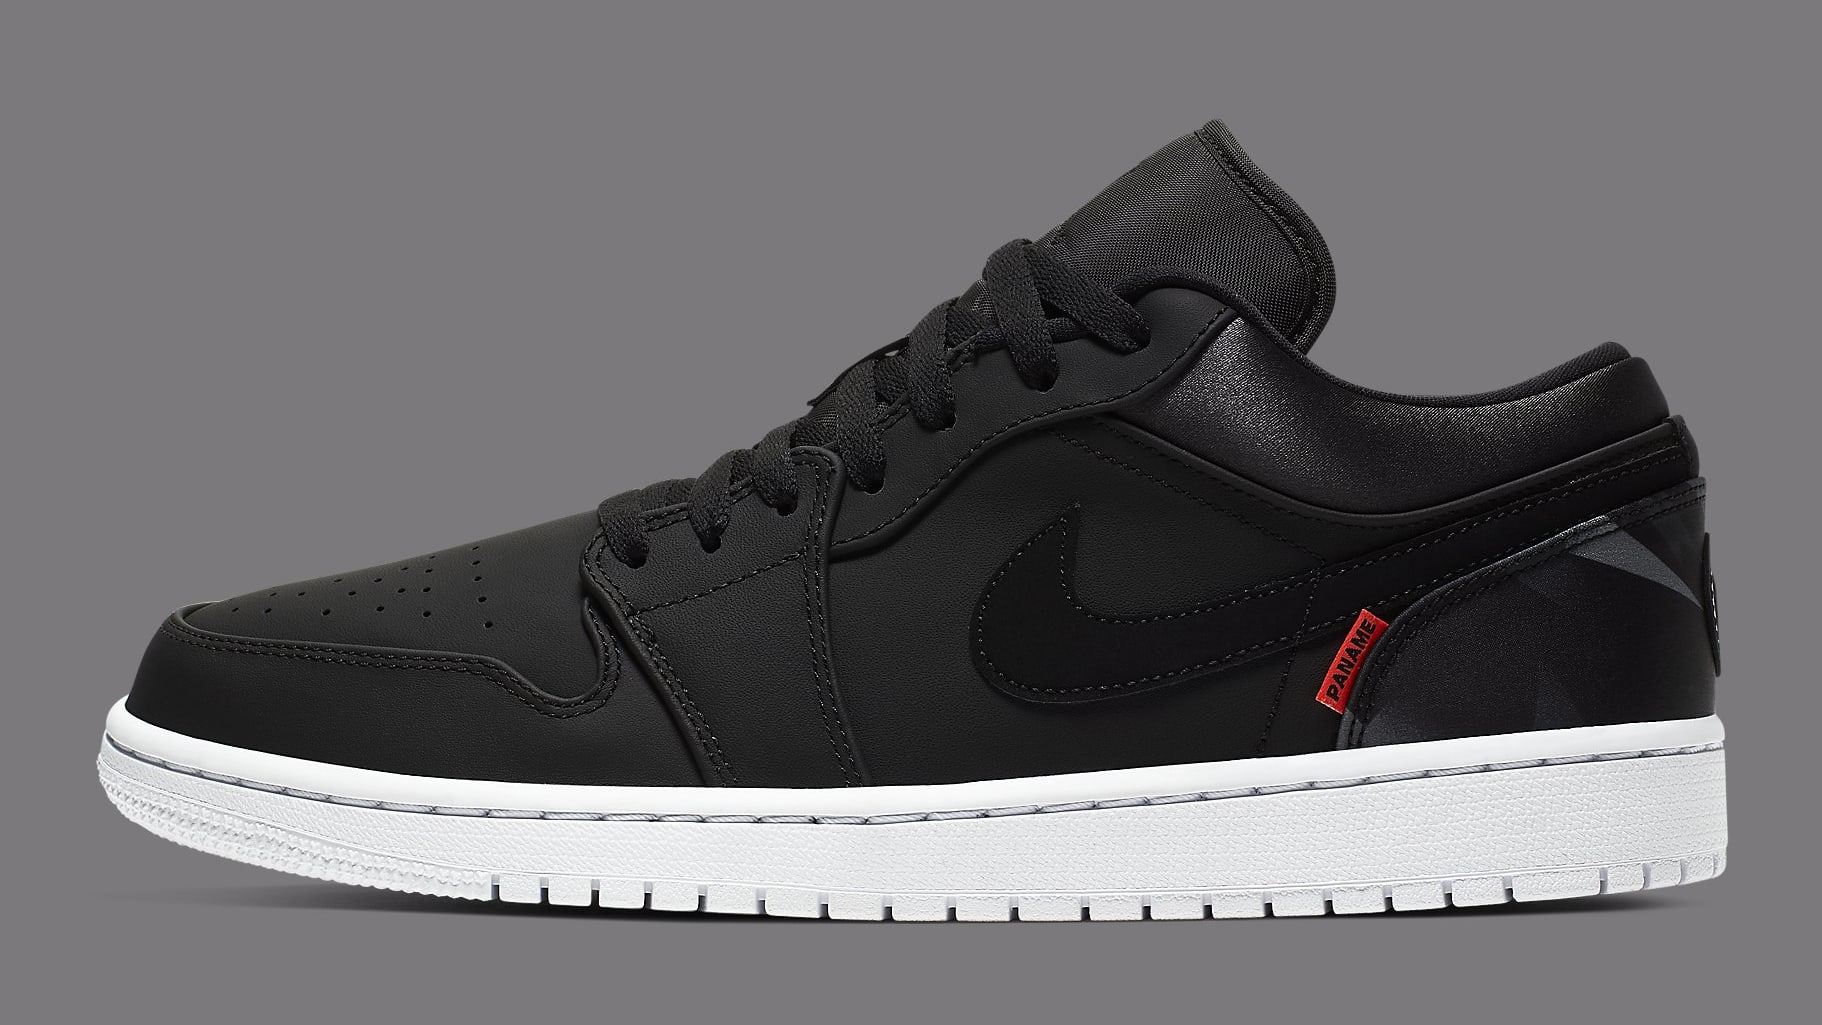 online store 13e7f d87cb Air Jordan 1 Low PSG Release Date CK0687-001 | Sole Collector